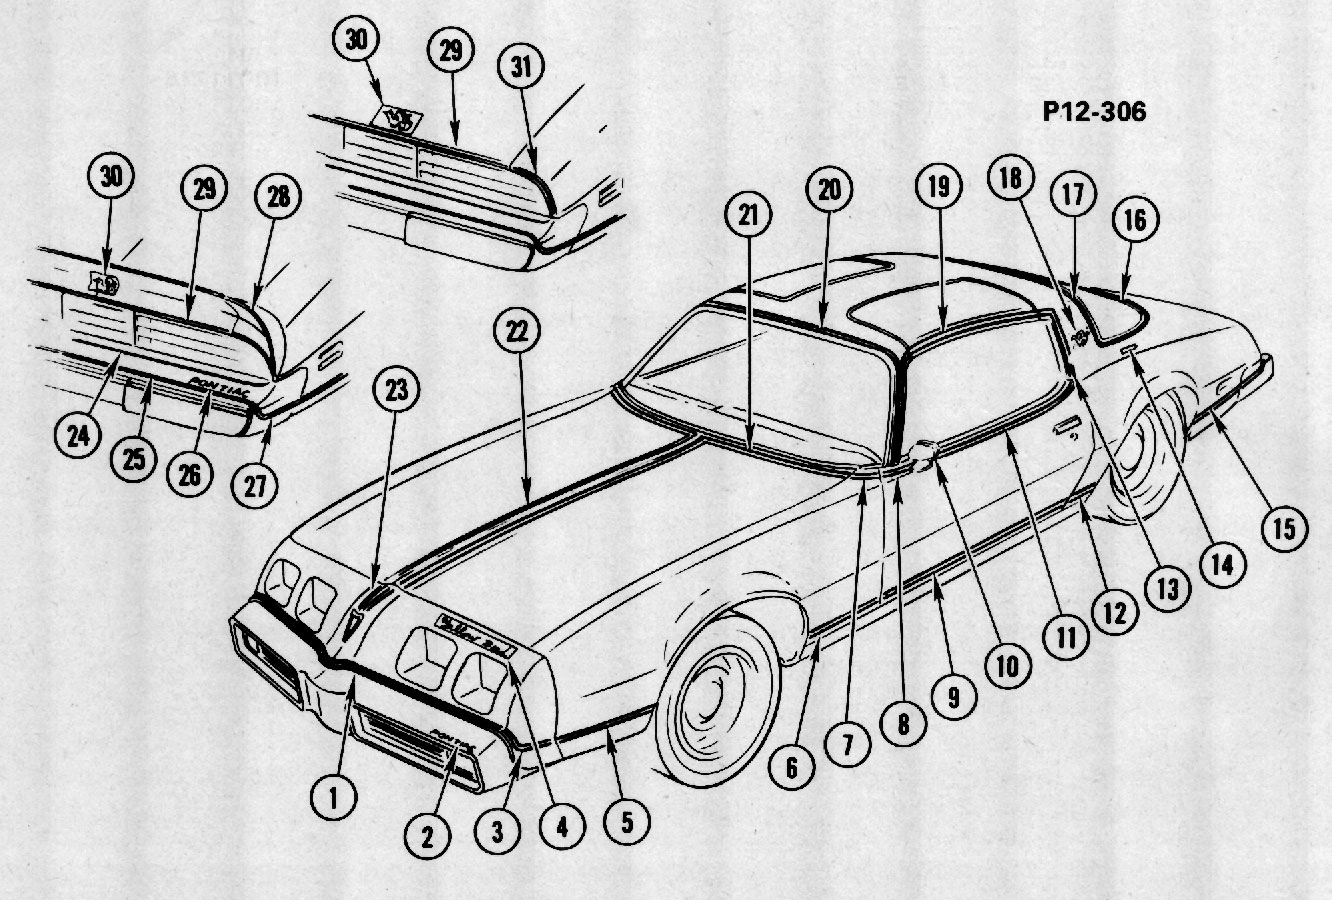 Pontiac Firebird Yellow Bird 1980 Cartype 1927 Buick Wiring Diagram Yellowbird Decals2